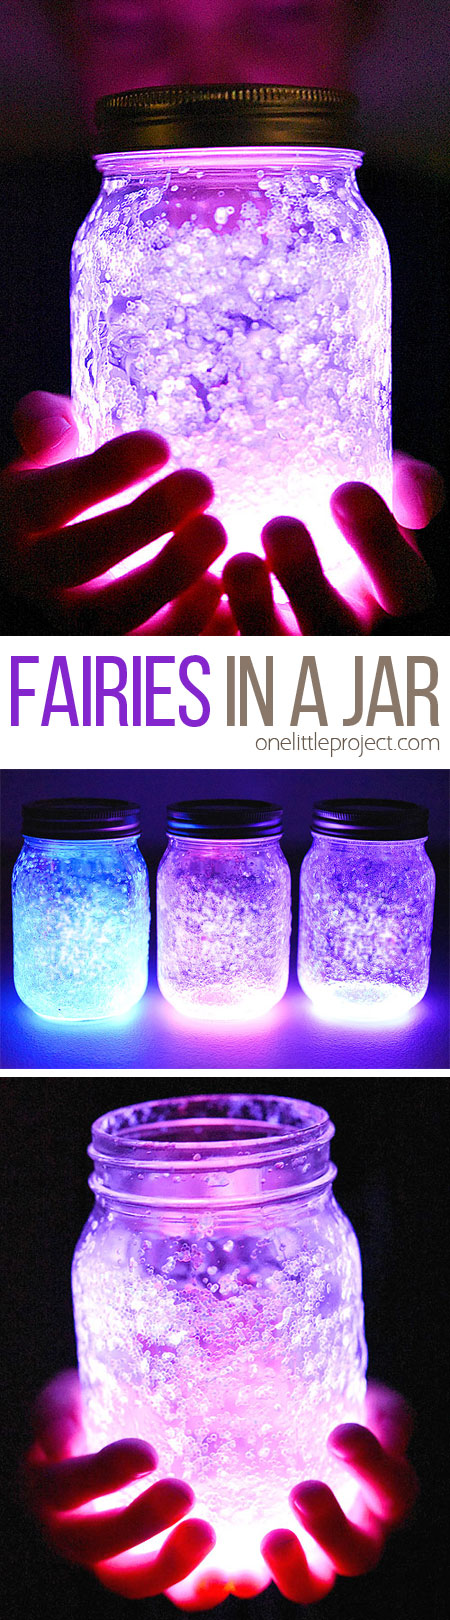 These fairy jars are so easy to make and they look SO COOL! All you need is a glow stick, glitter and a mason jar and you can capture your own twinkling fairies in a jar! This is such a great glow stick idea and a super easy kids activity!